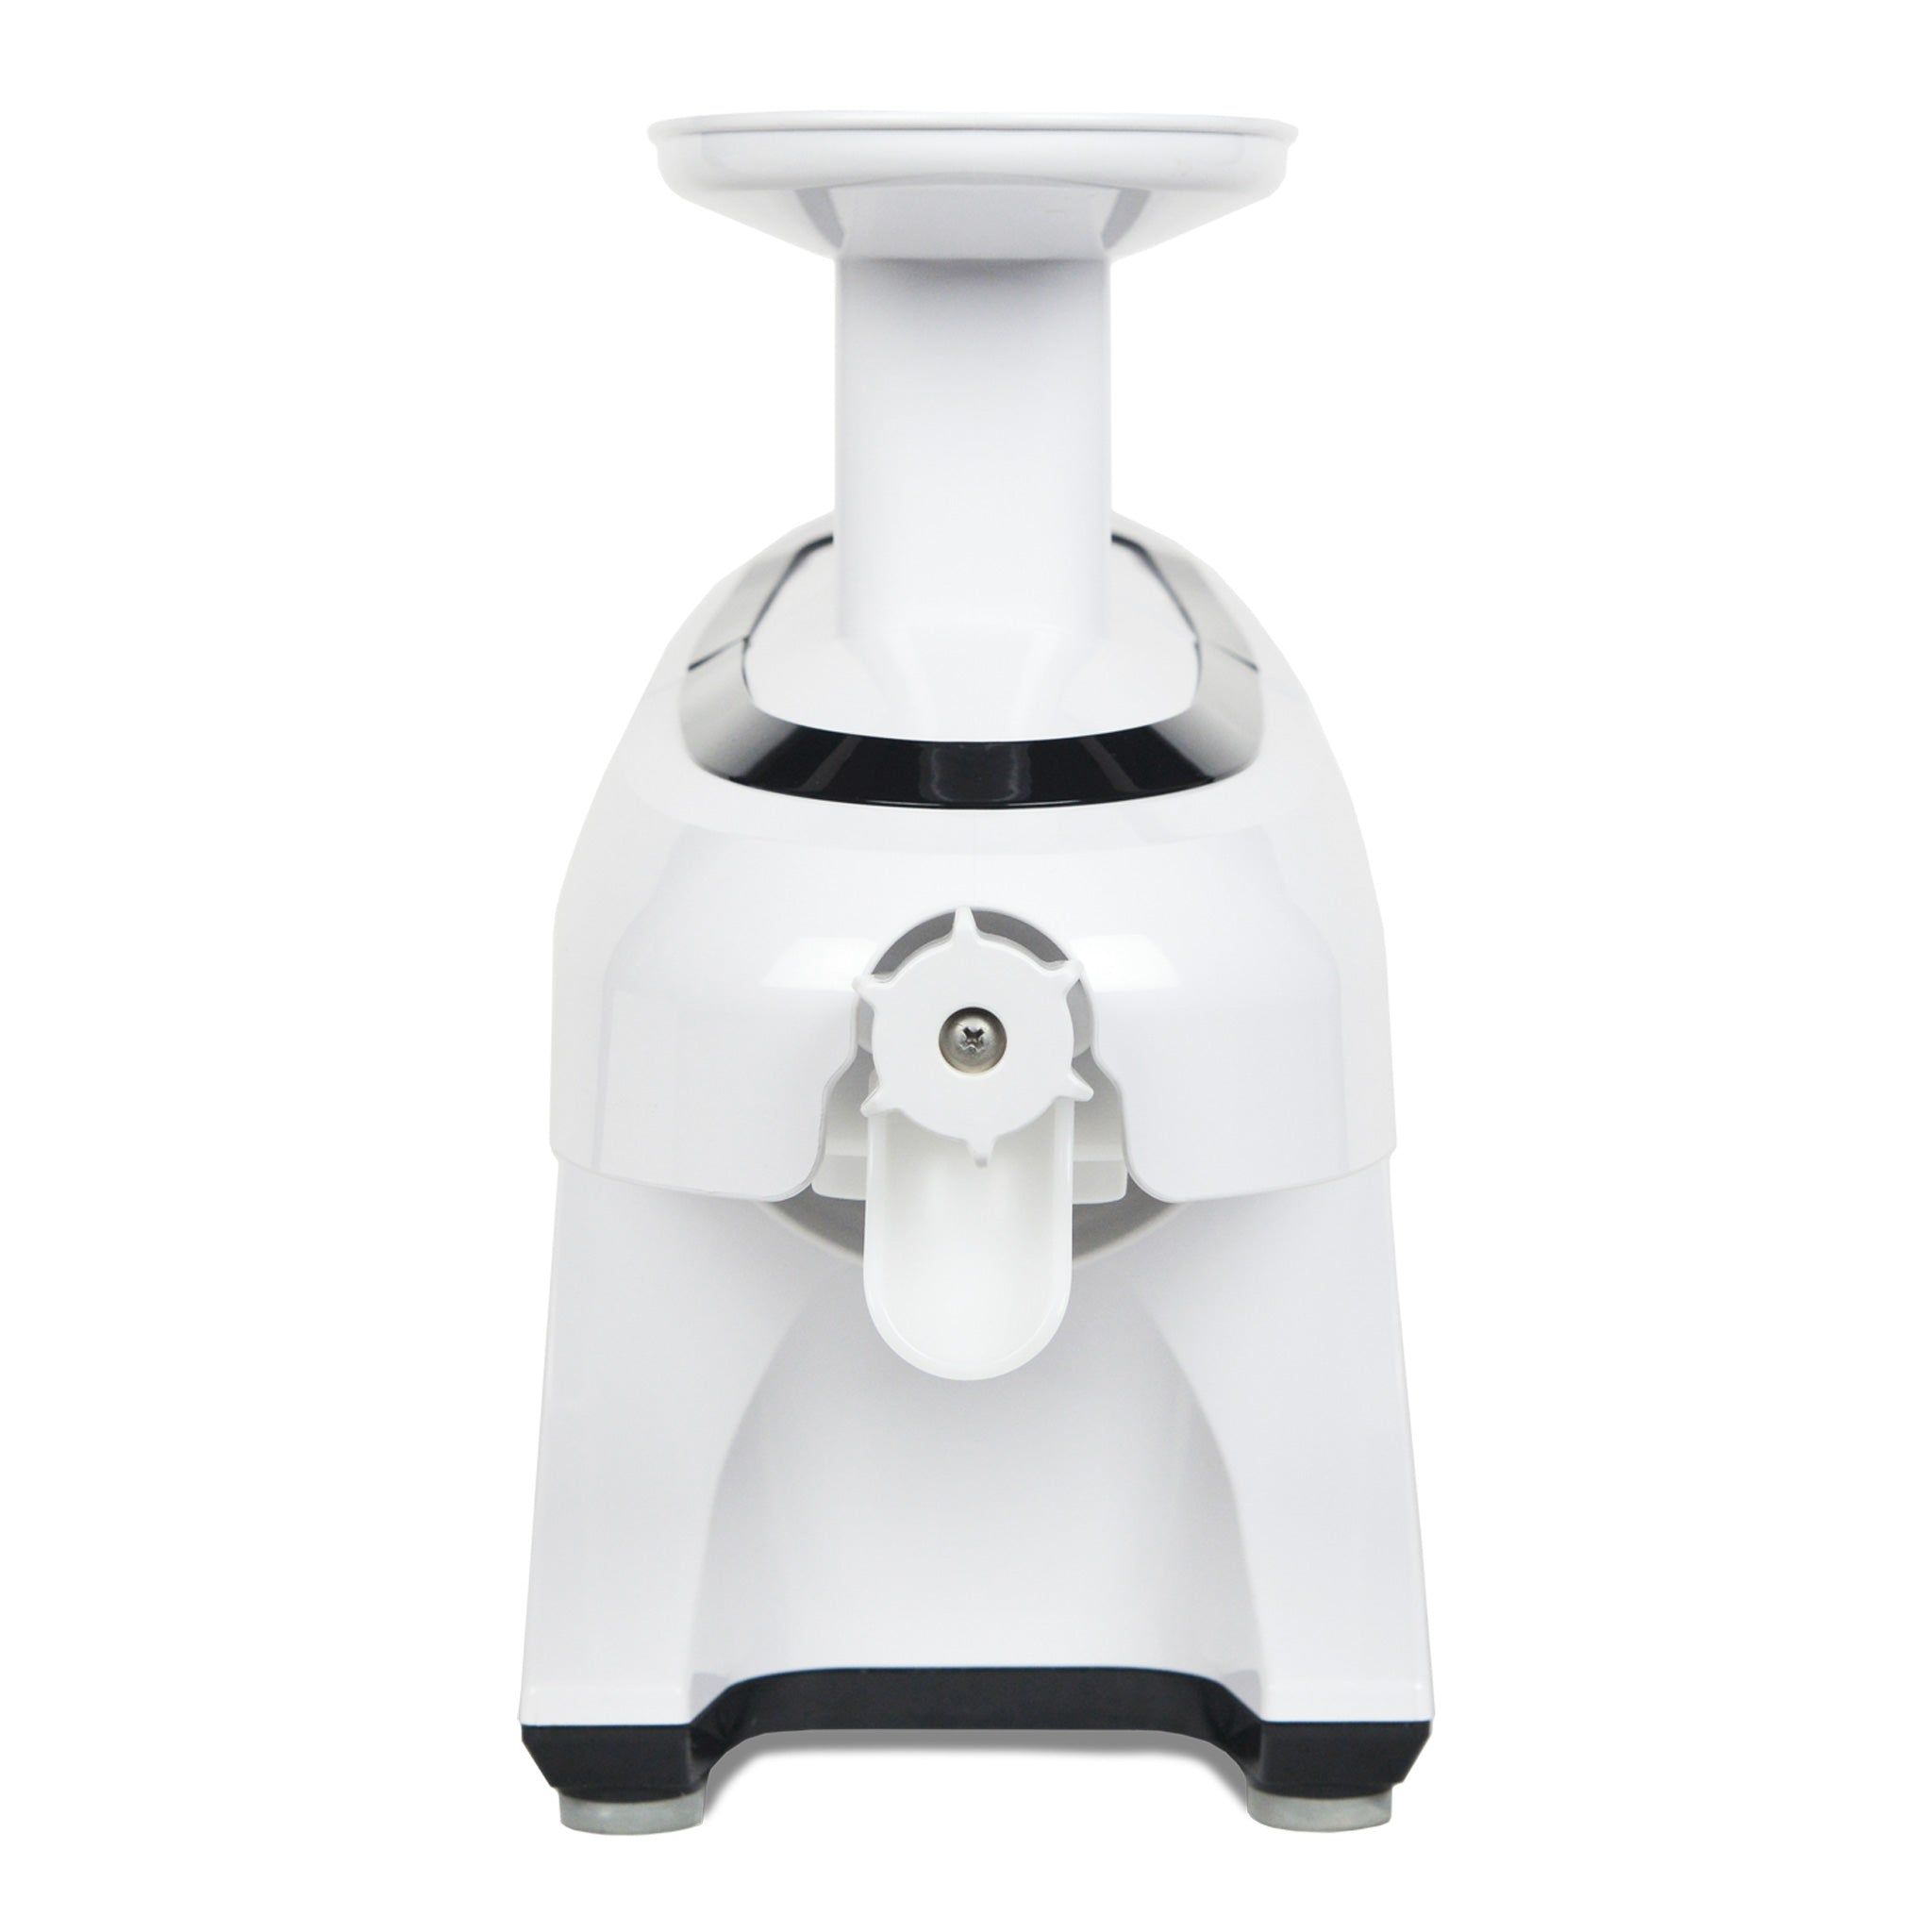 Greenstar® Elite Jumbo Twin Gear Slow Masticating Juicer in White GSE-5000-B - Tribest